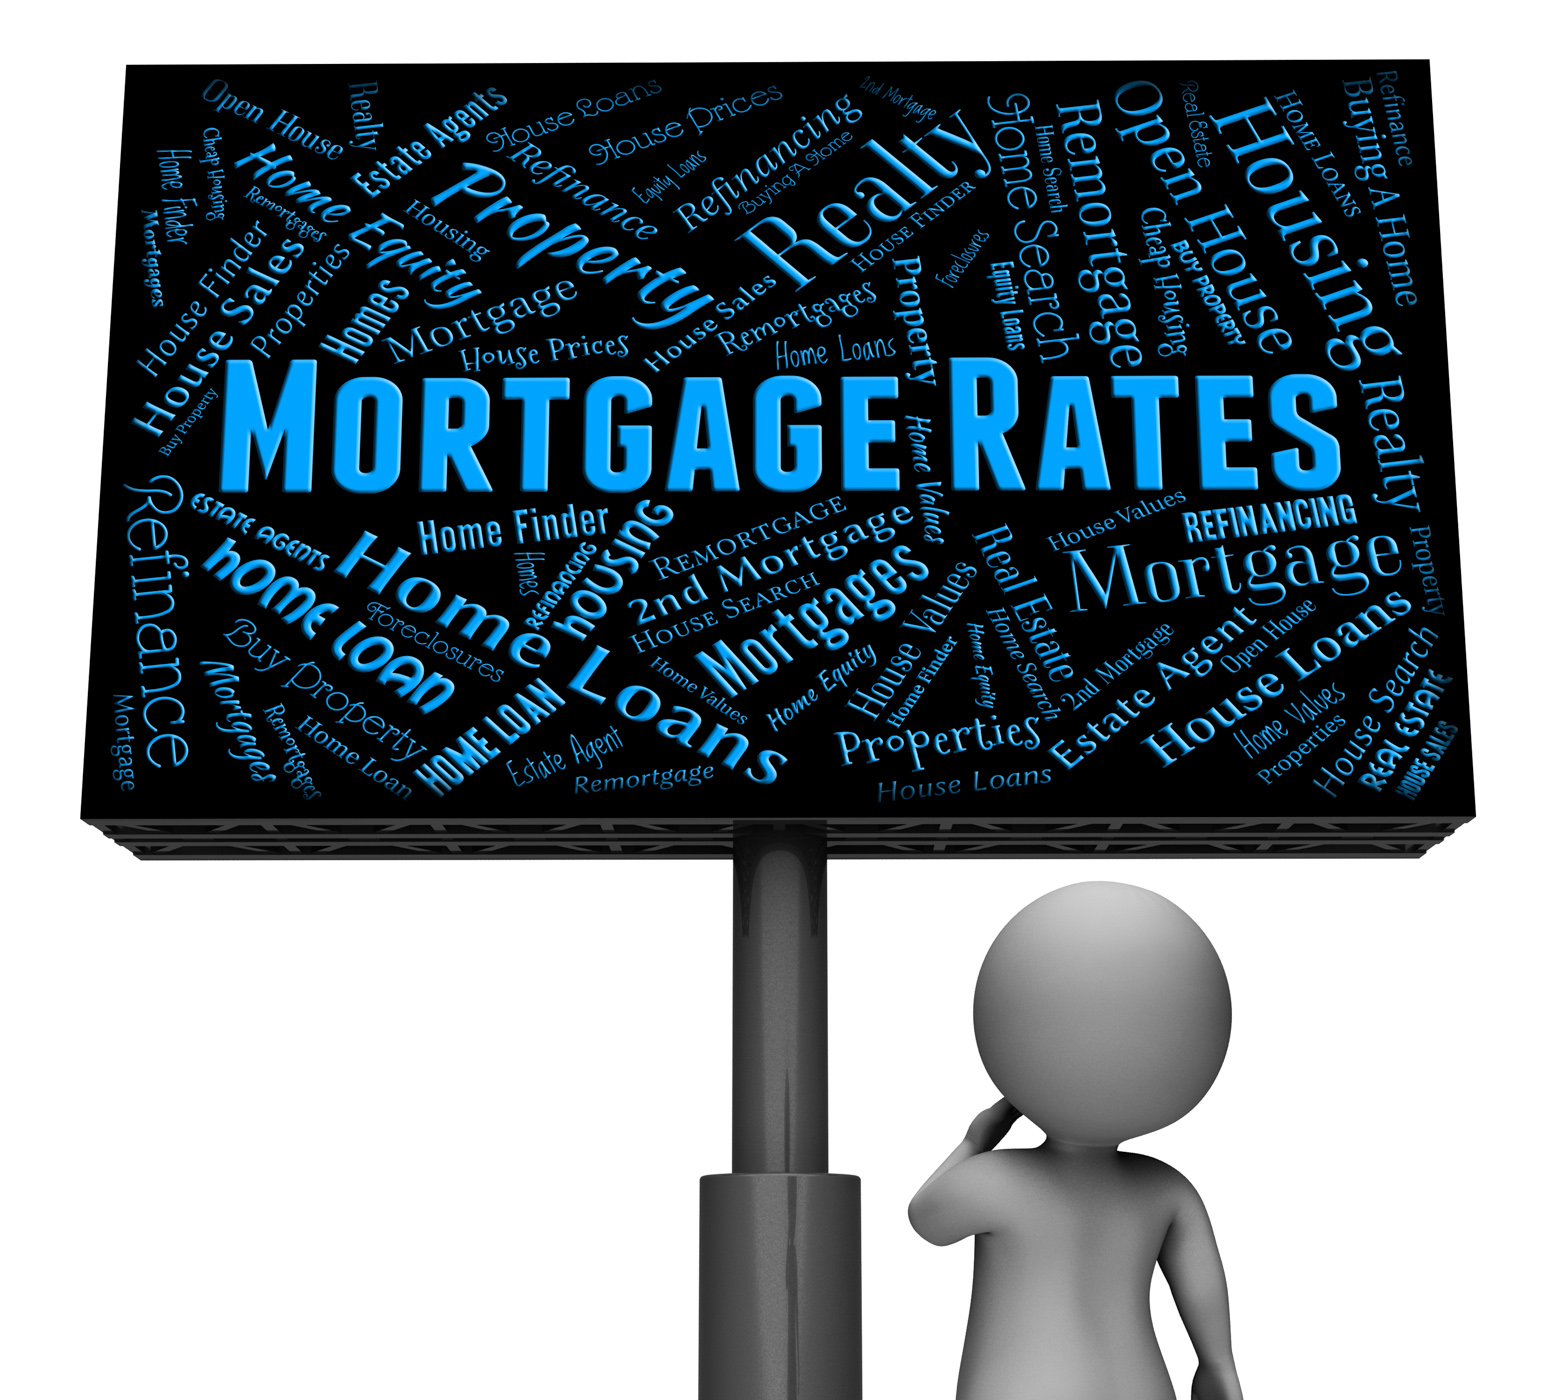 Mortgage rates represents home loan and board photo